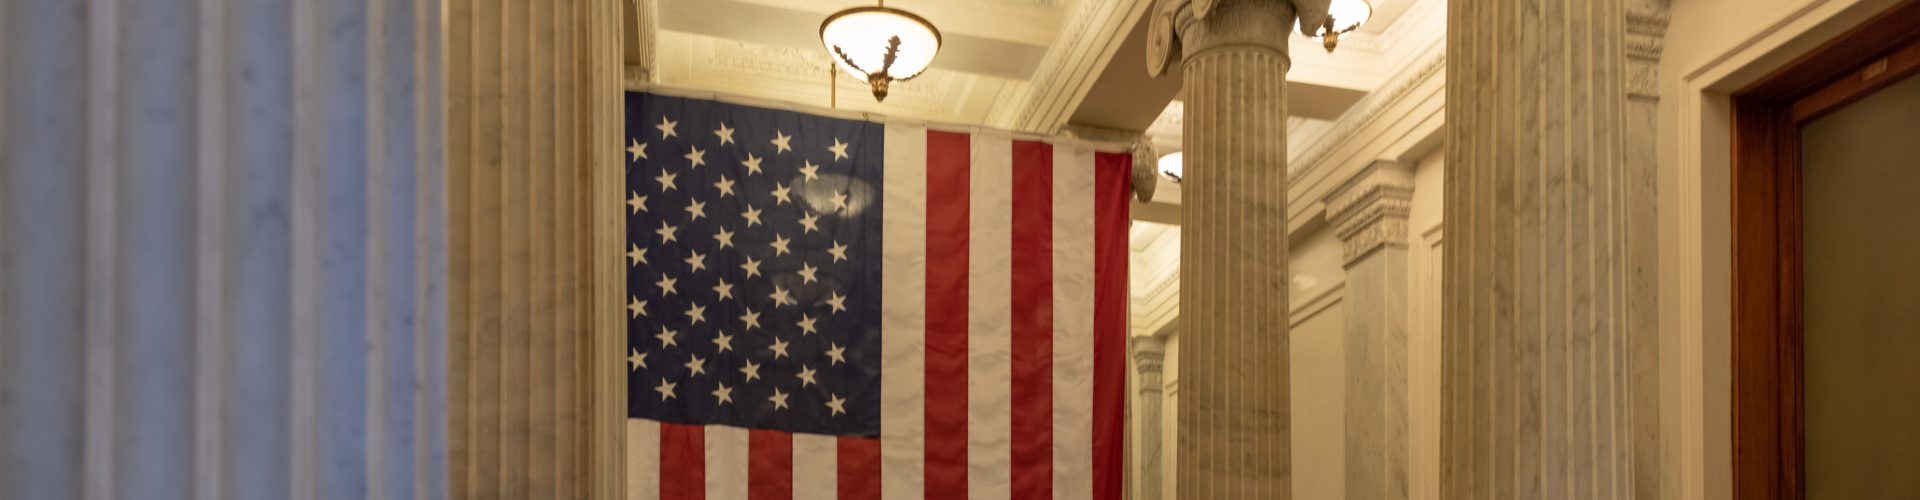 A US flag hanging at the corridor ceiling of US Capitol corridor ceiling, Interior, Washington DC.